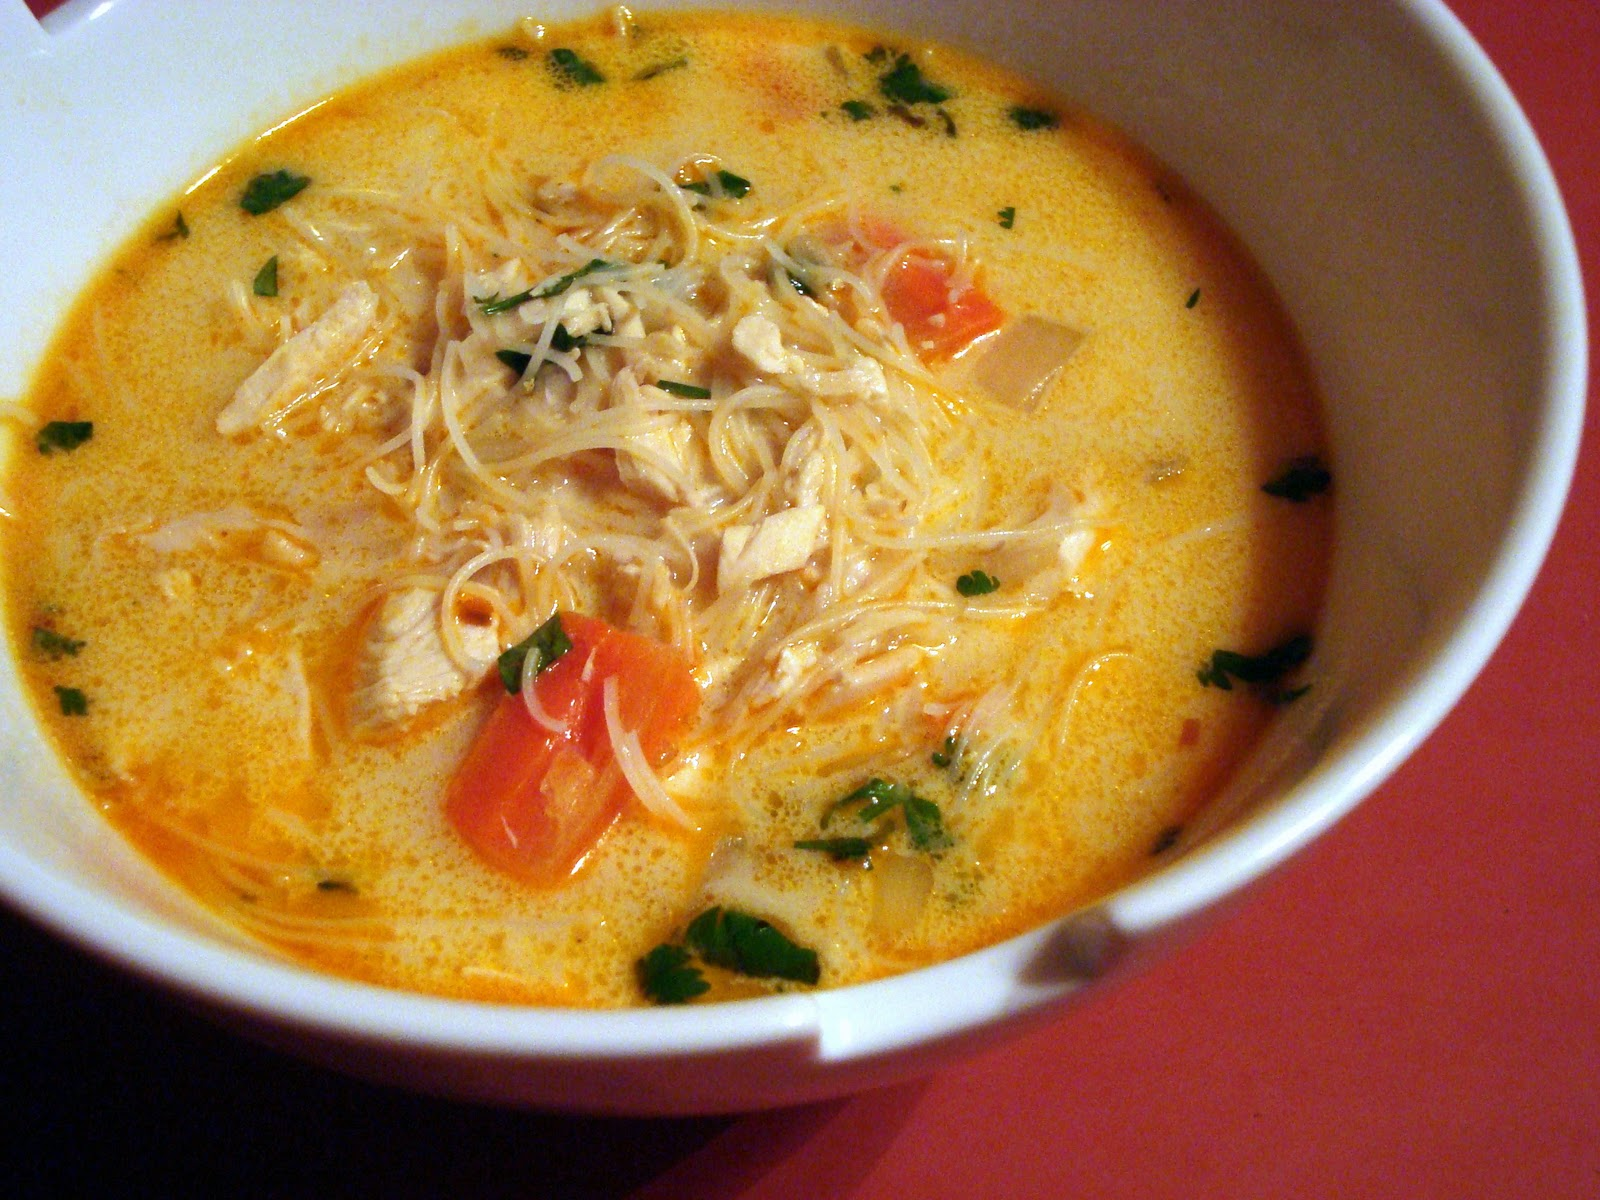 The Someday Diaries: The Rumbly Tummy: Soup, beautiful soup!